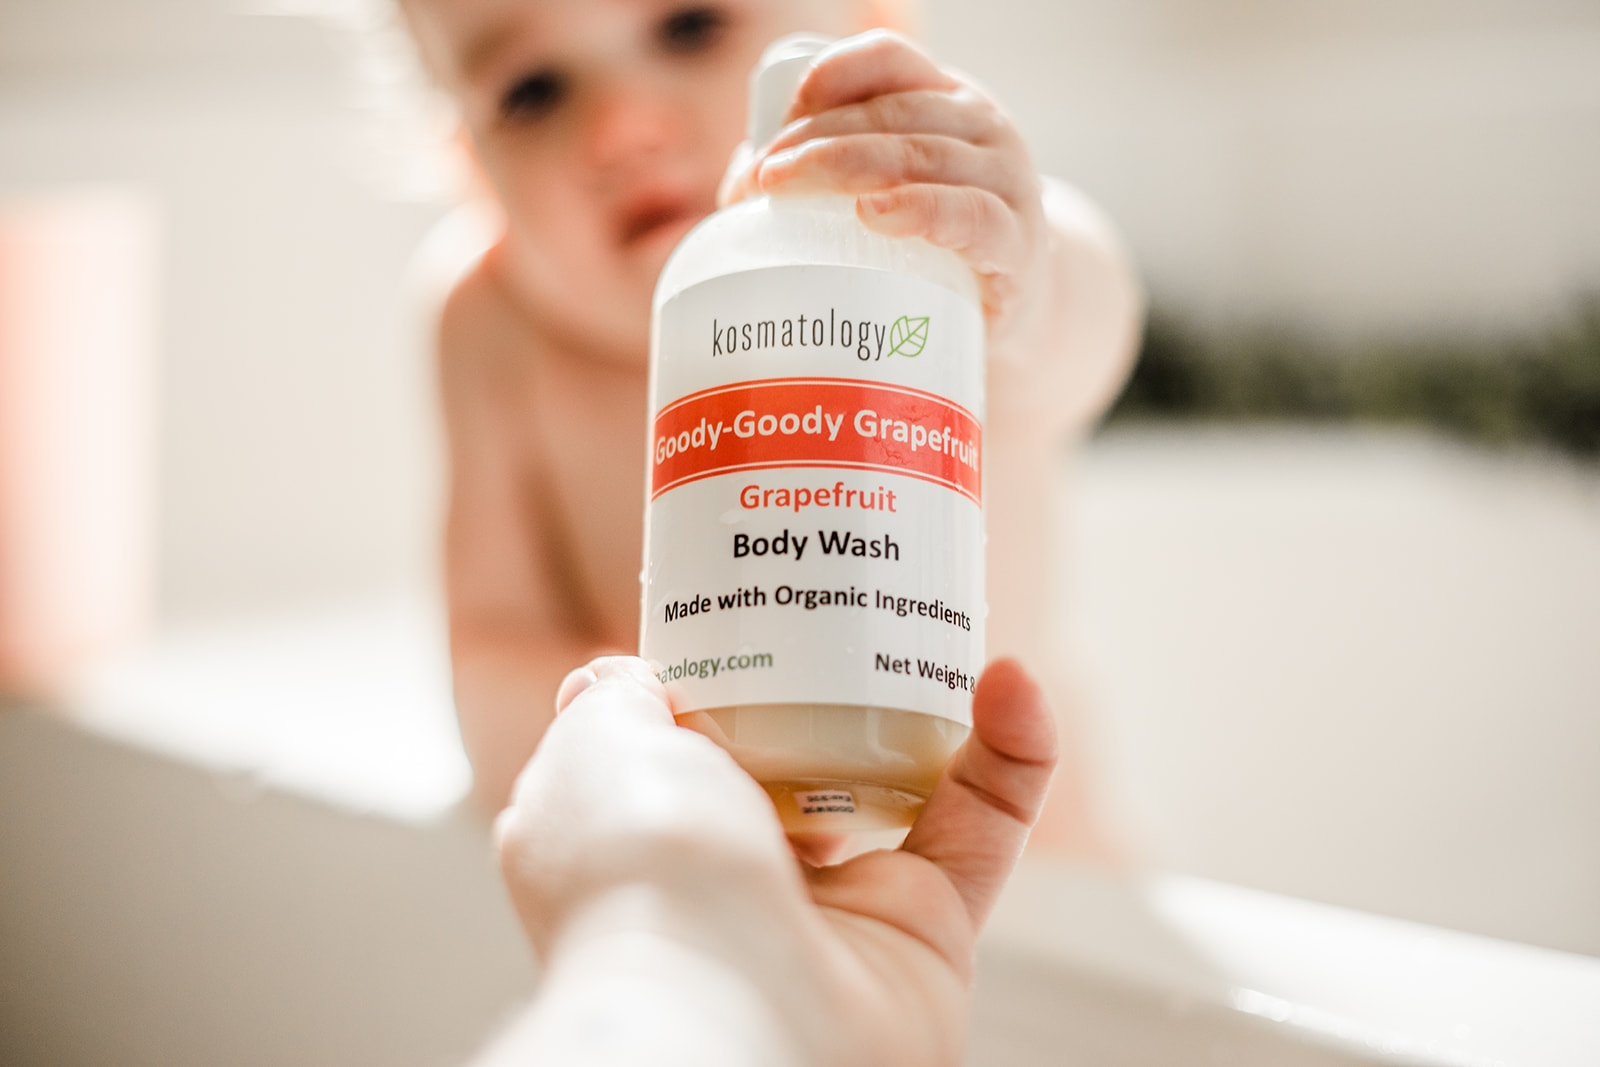 Goody Goody Grapefruit Body Wash with infant reaching out to grab it from mom